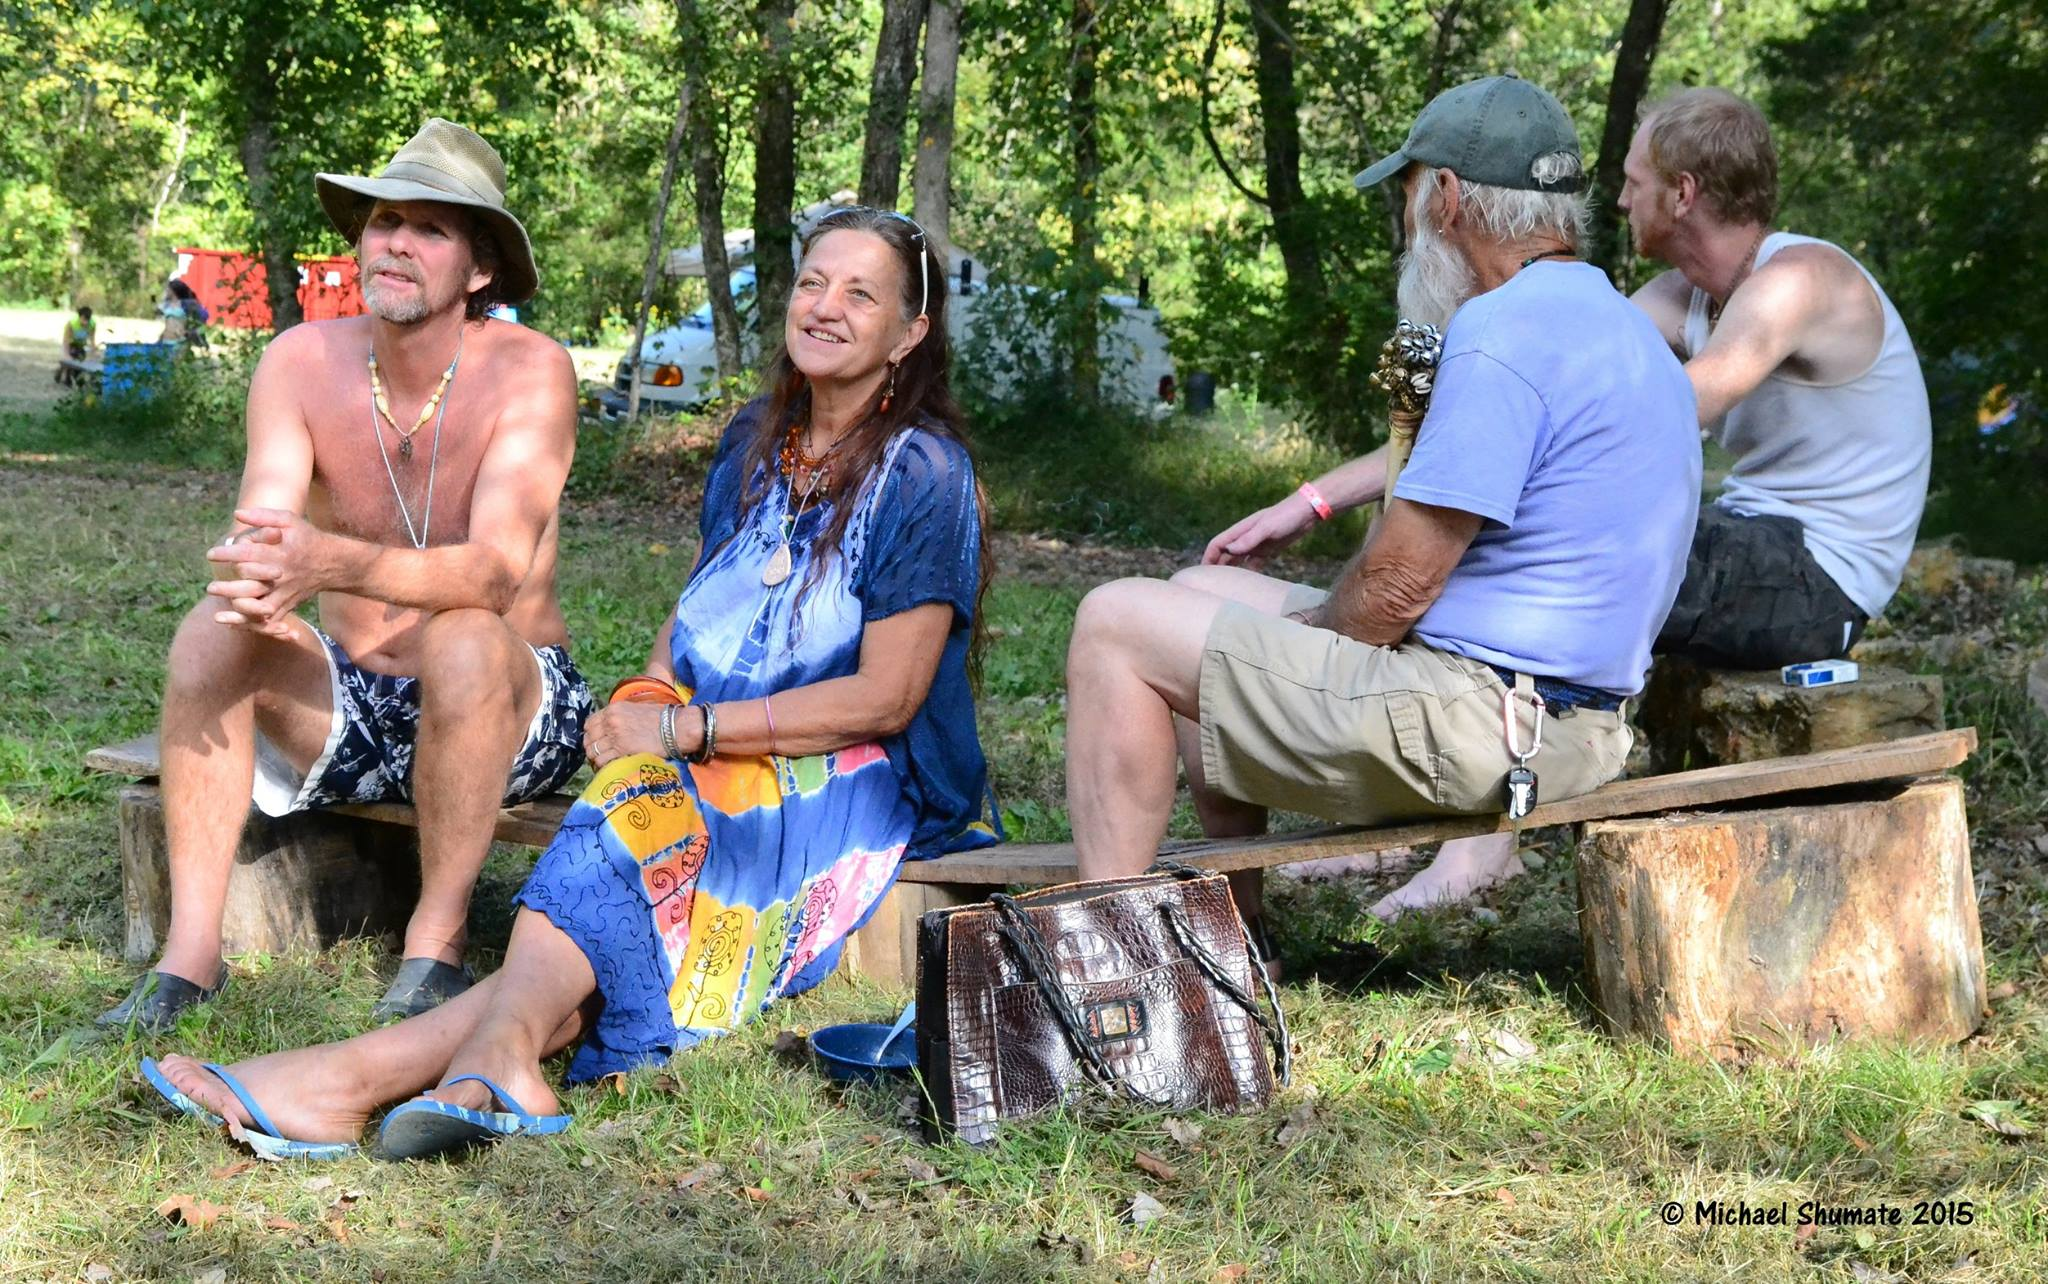 hippies at music festival 2015 by michael shumate